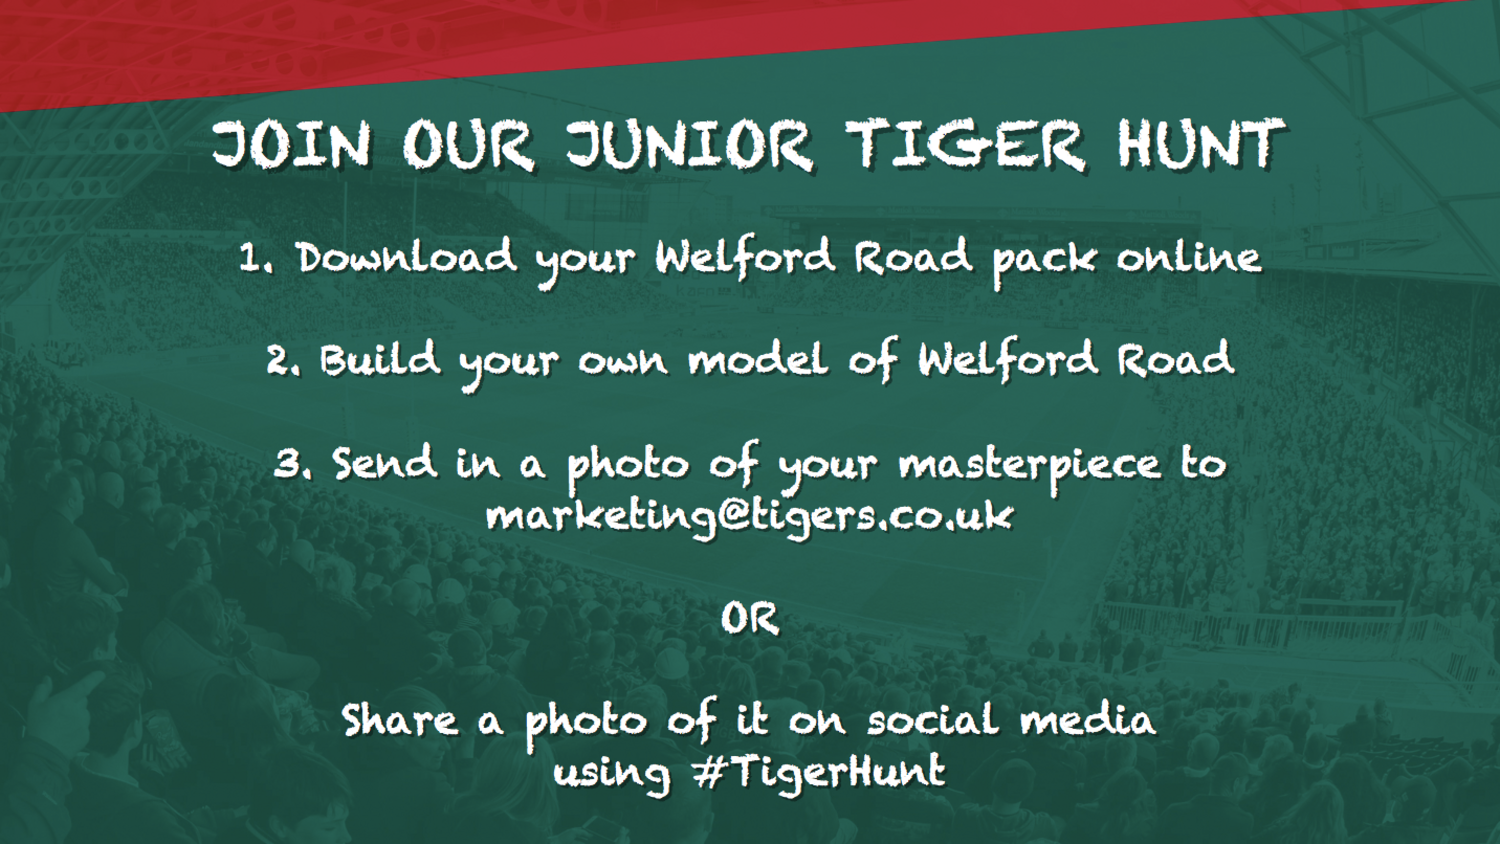 Junior Tiger Hunt 2018